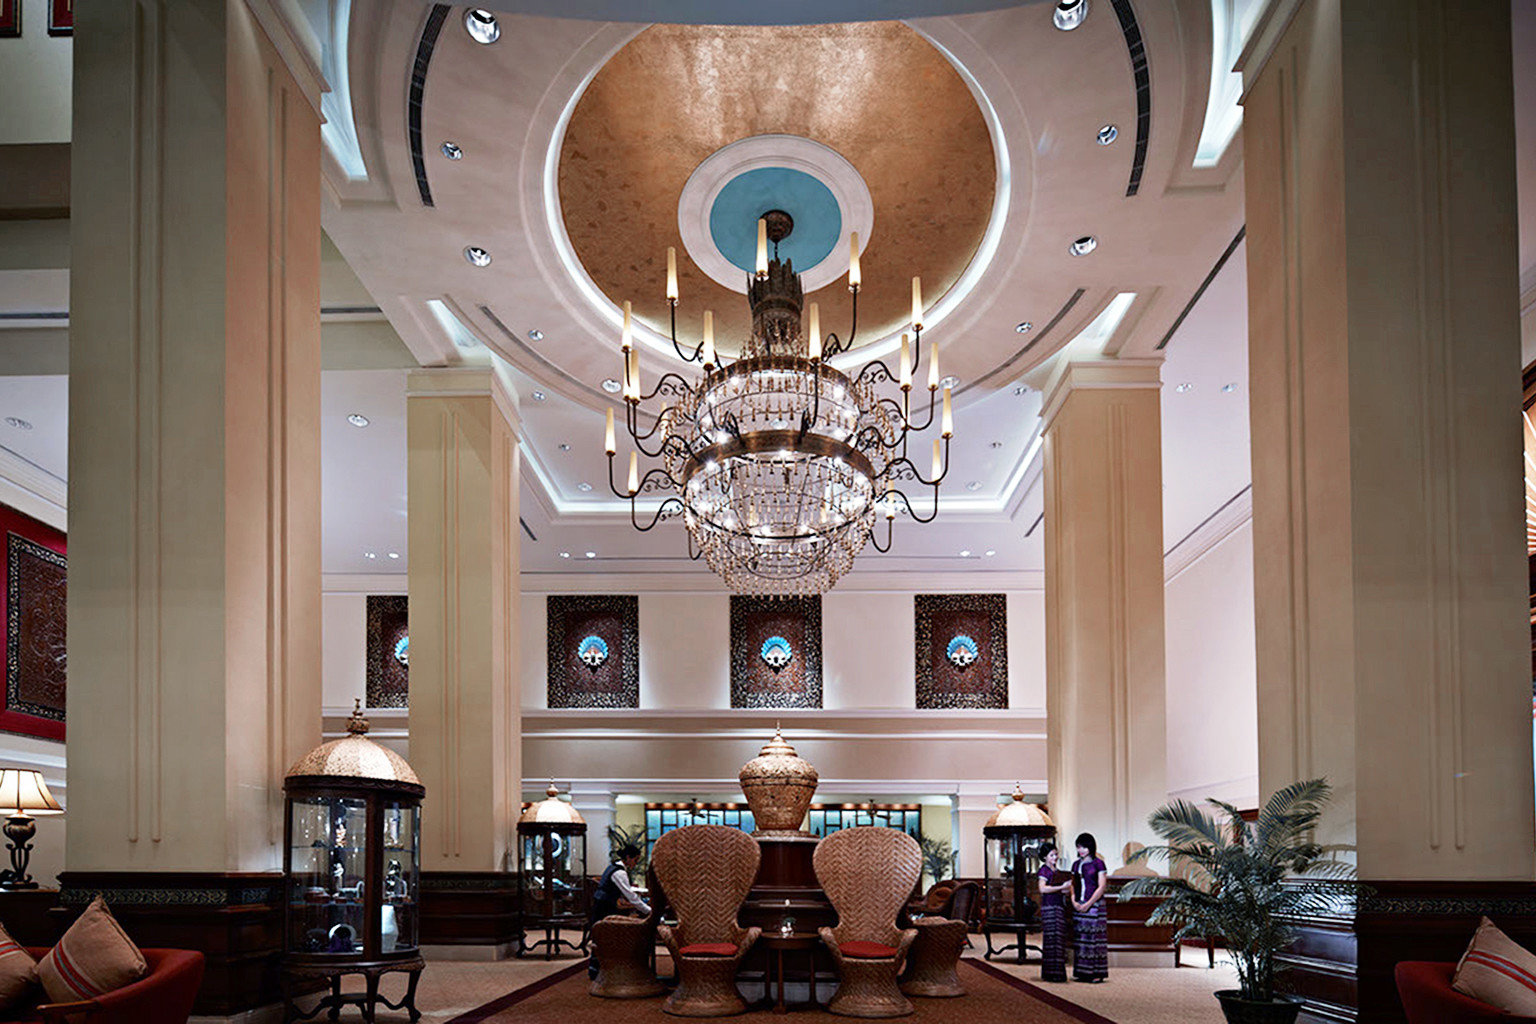 building home Lobby living room hall tourist attraction